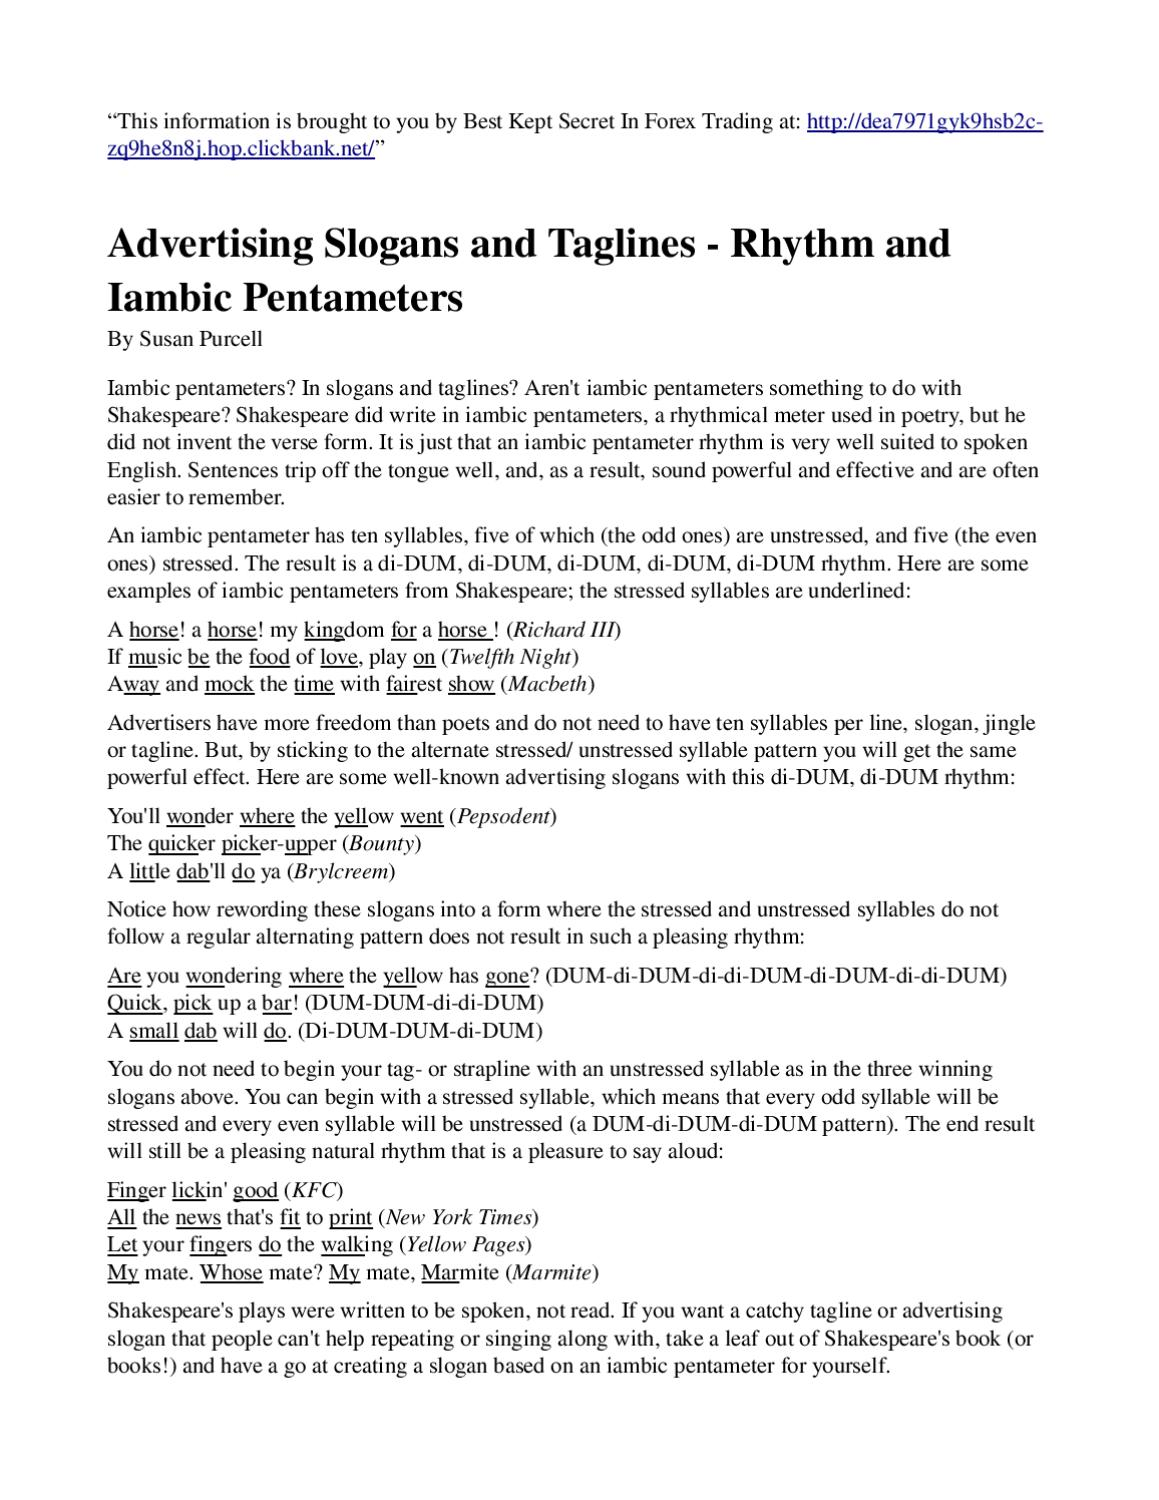 Advertising Slogans And Taglines Rhythm And Iambic Pentameters By